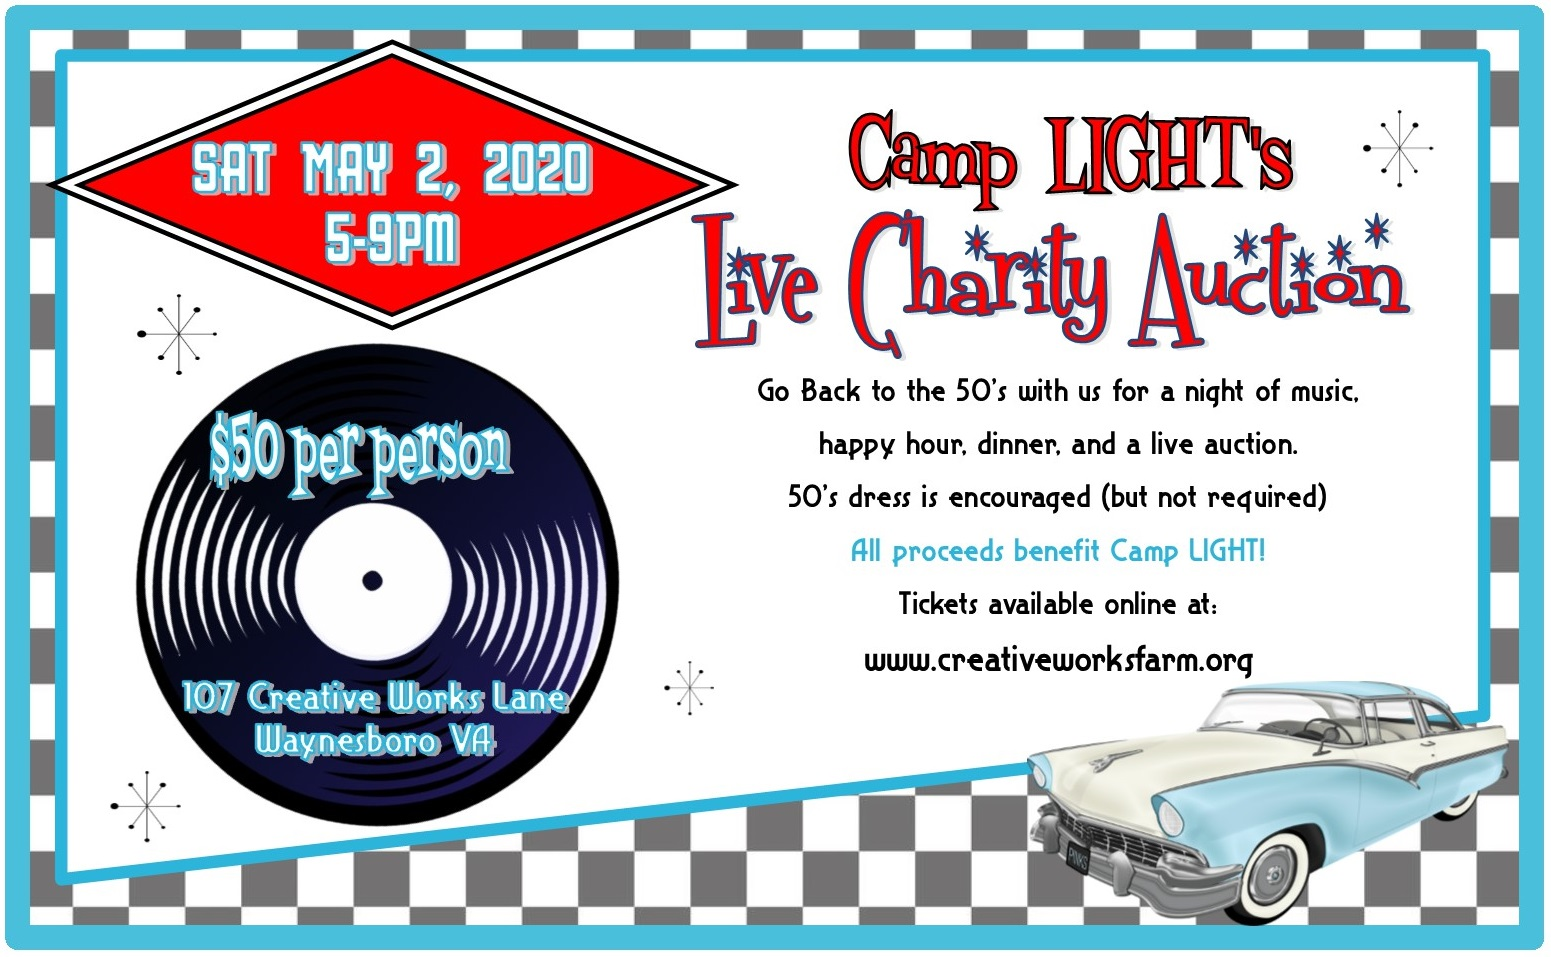 Camp LIGHT Live Charity Auction 2020